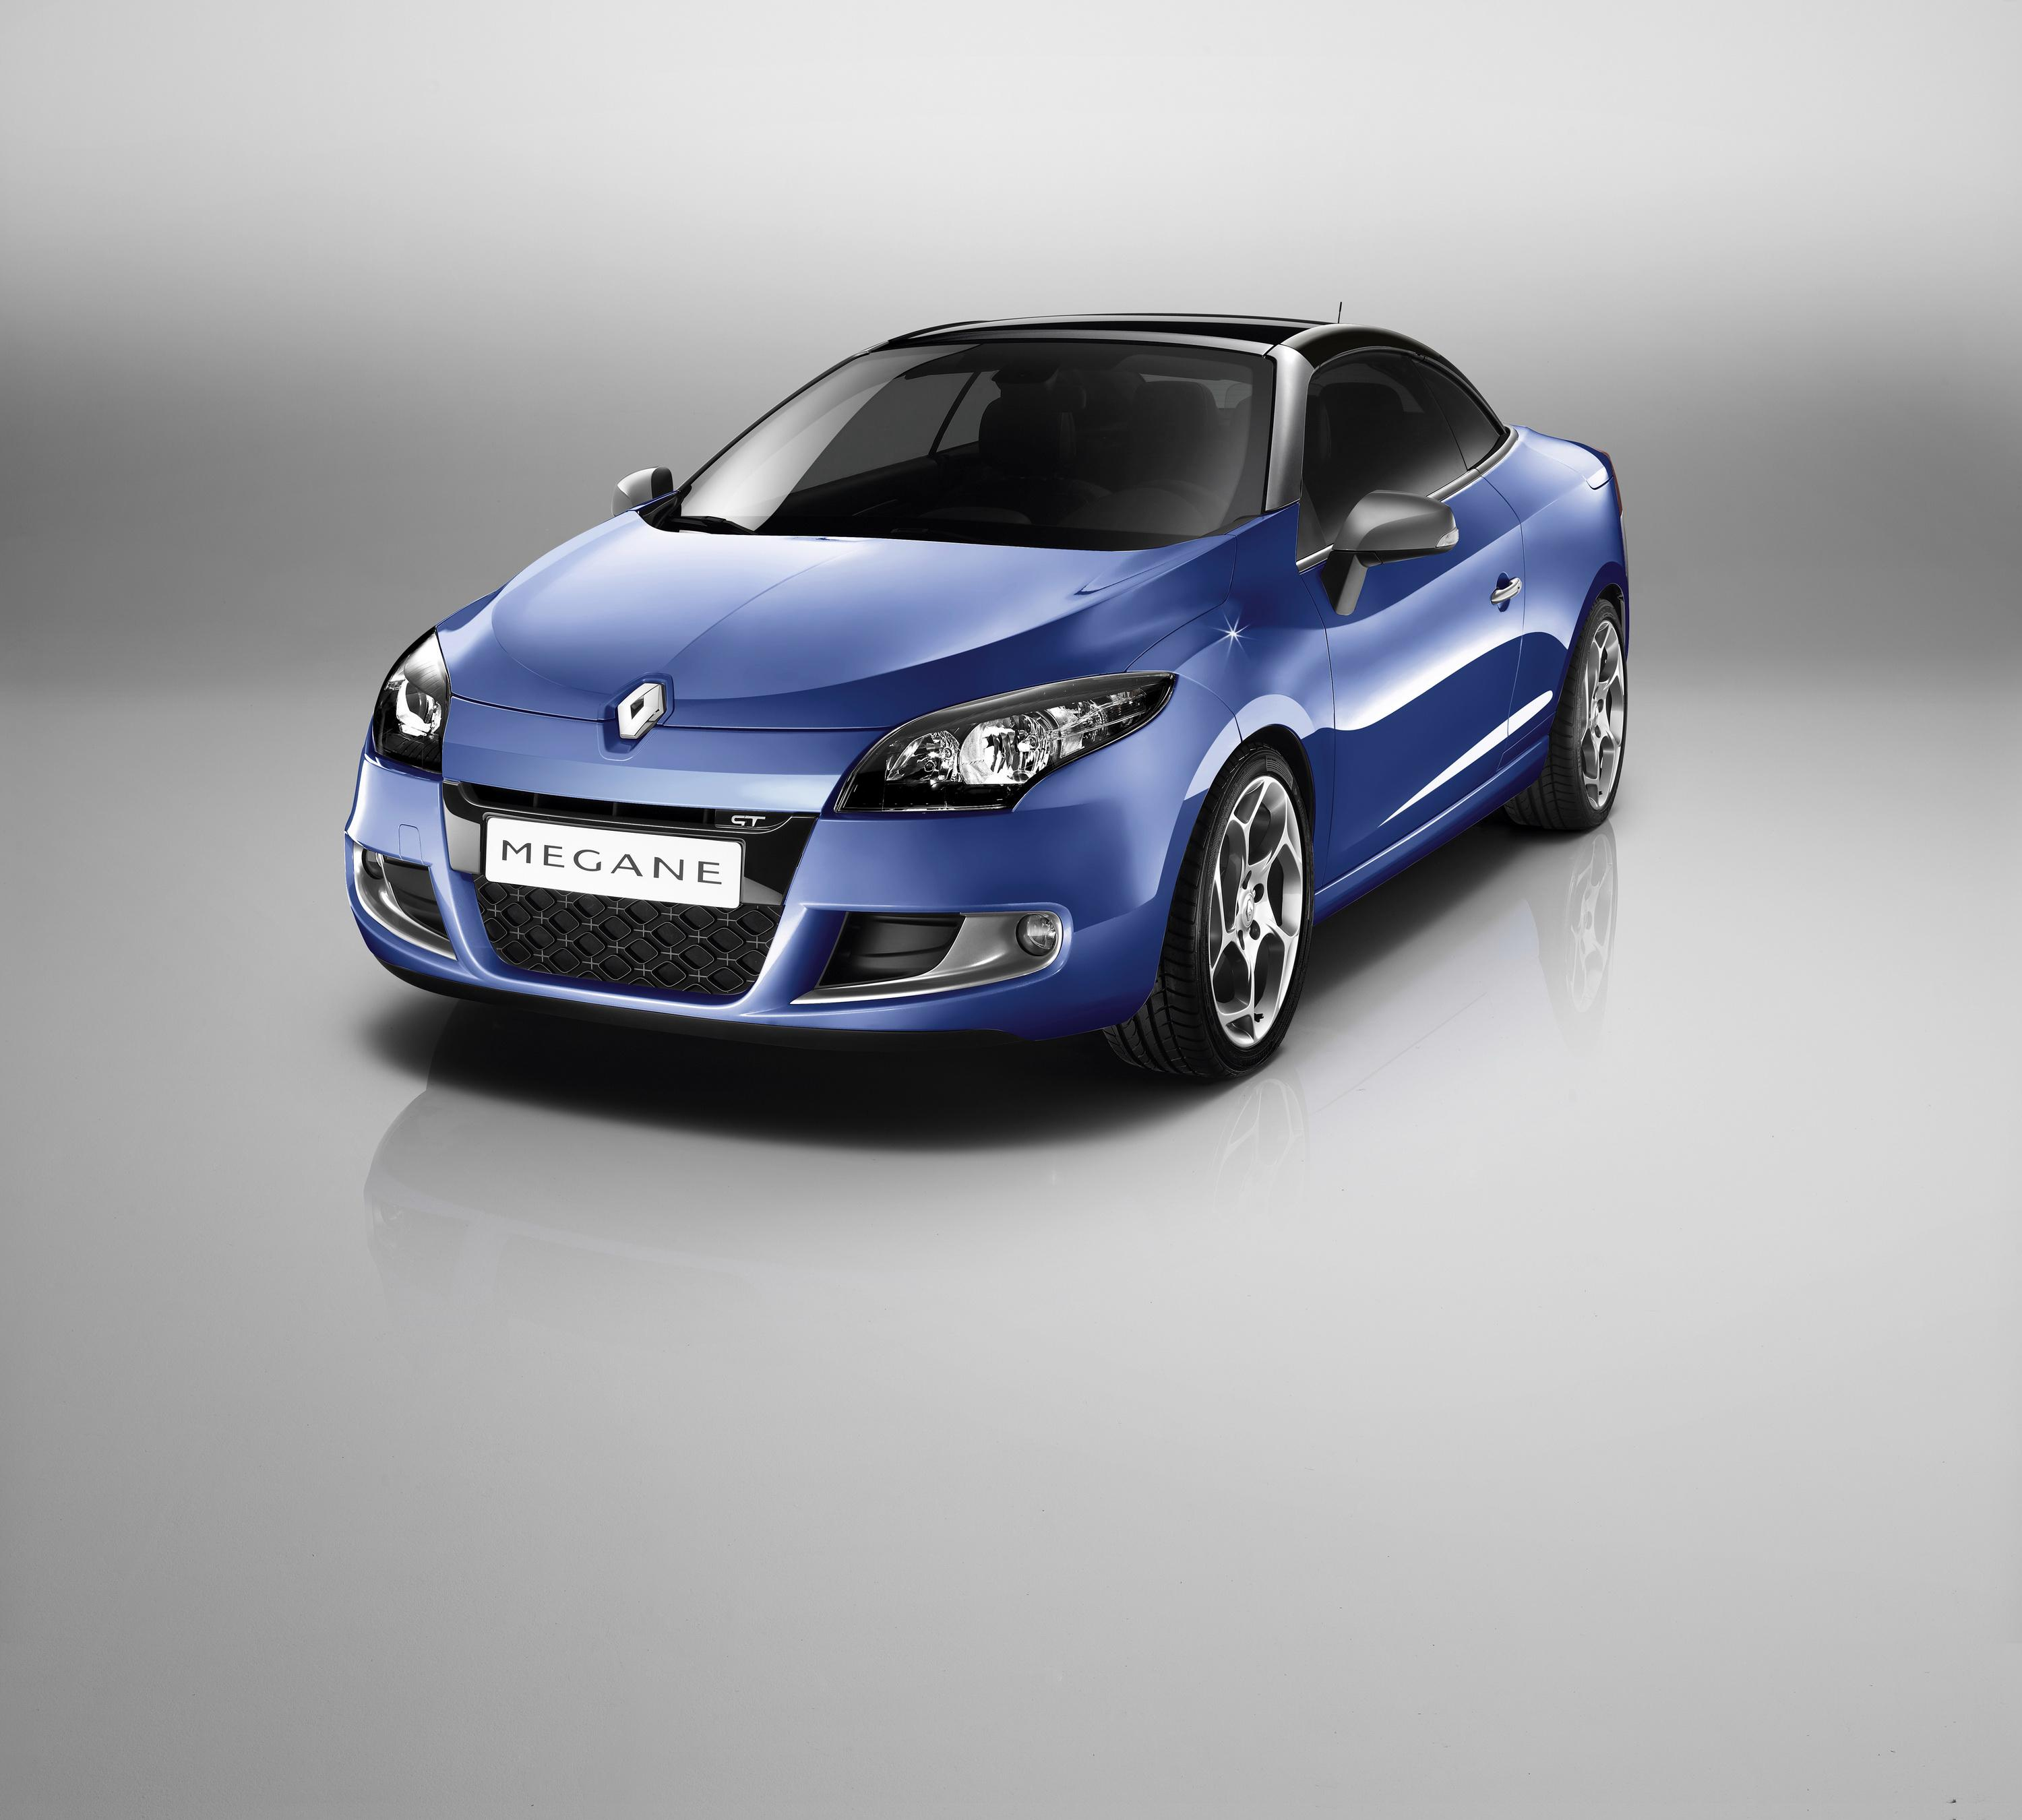 2010 Renault Megane GT And GT Line Pictures, Photos